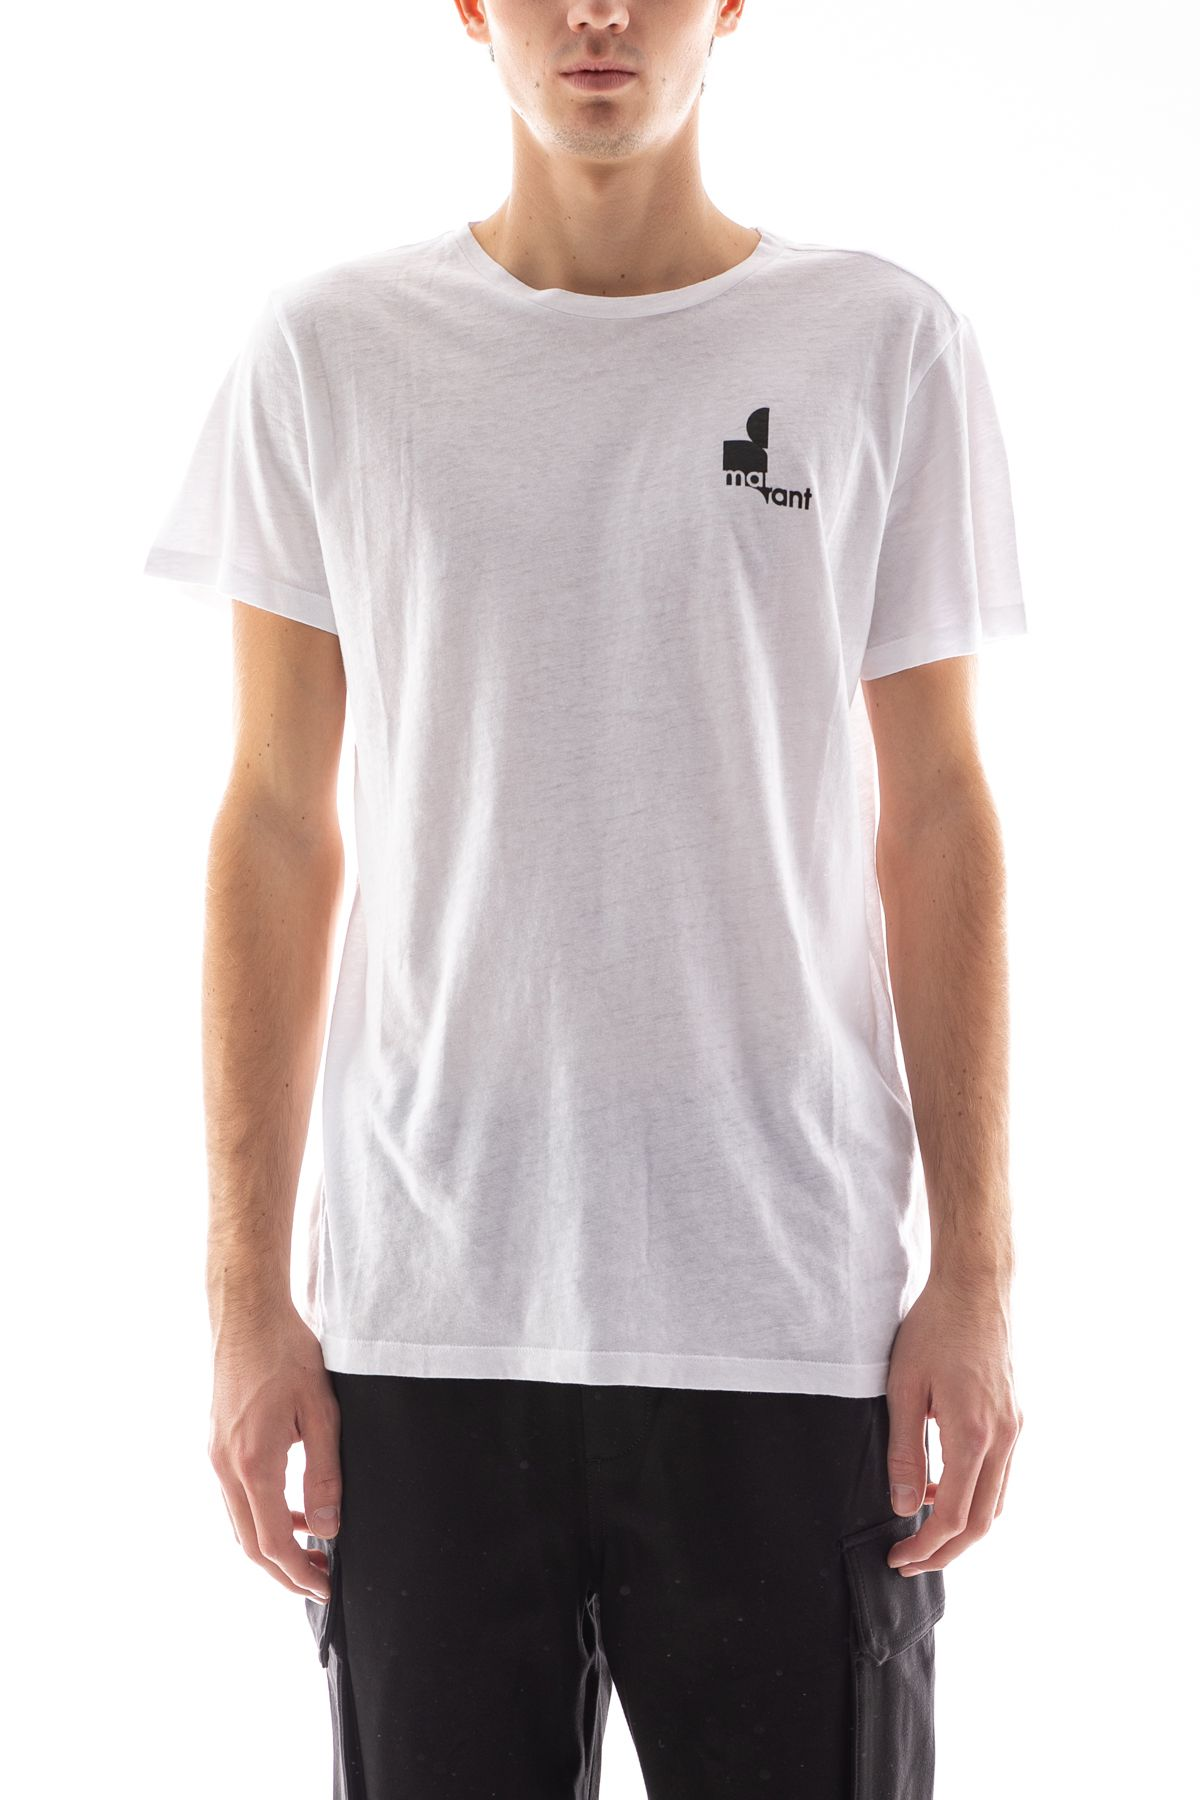 ISABEL MARANT ISABEL MARANT MEN'S WHITE COTTON T-SHIRT